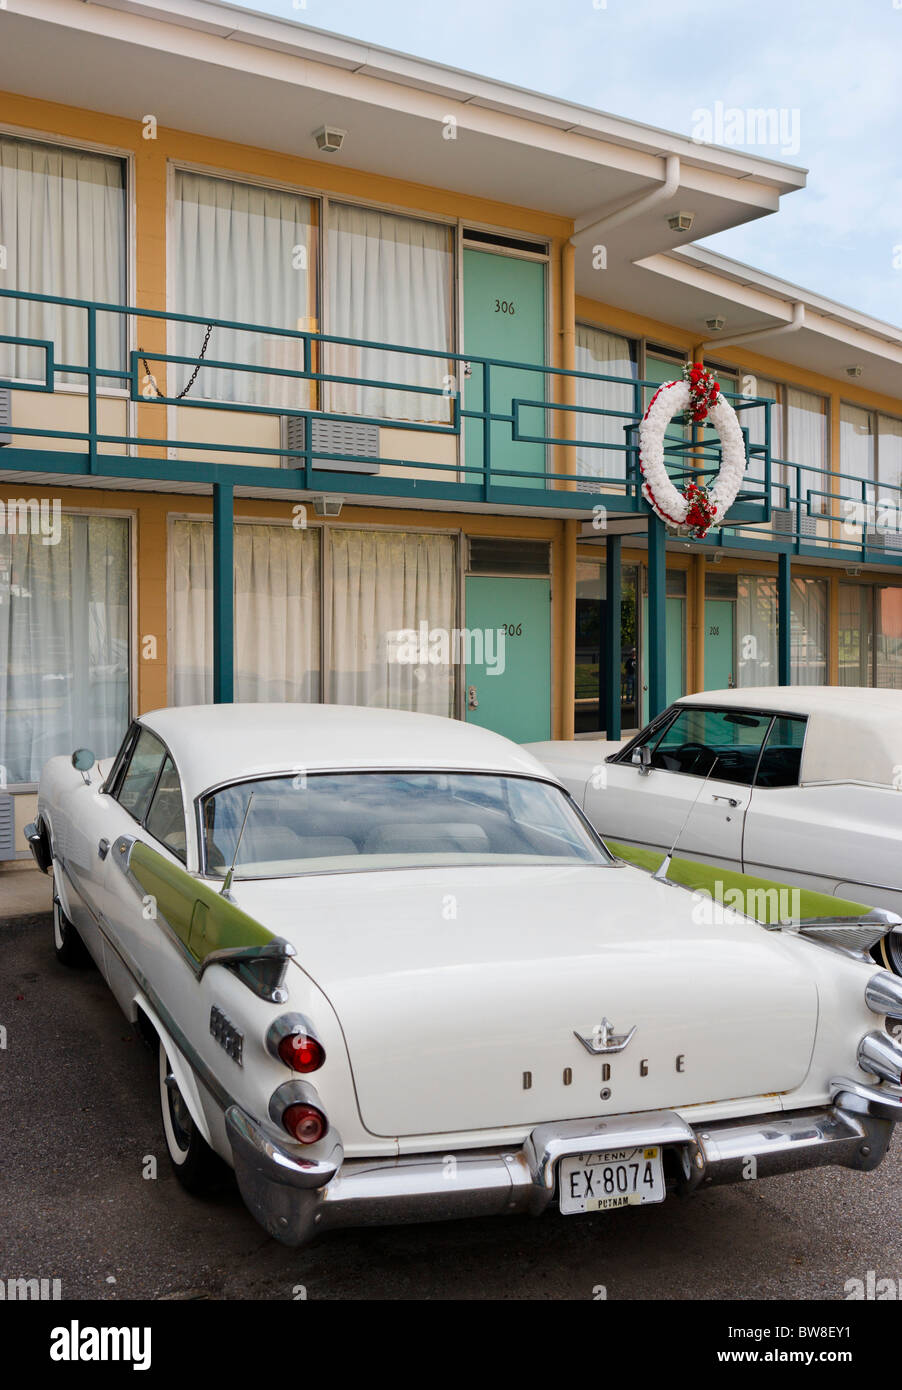 Room 306 at the Lorraine Motel, site of Martin Luther King Jr's assassination, National Civil Rights Museum, Memphis, Tennesse Stock Photo